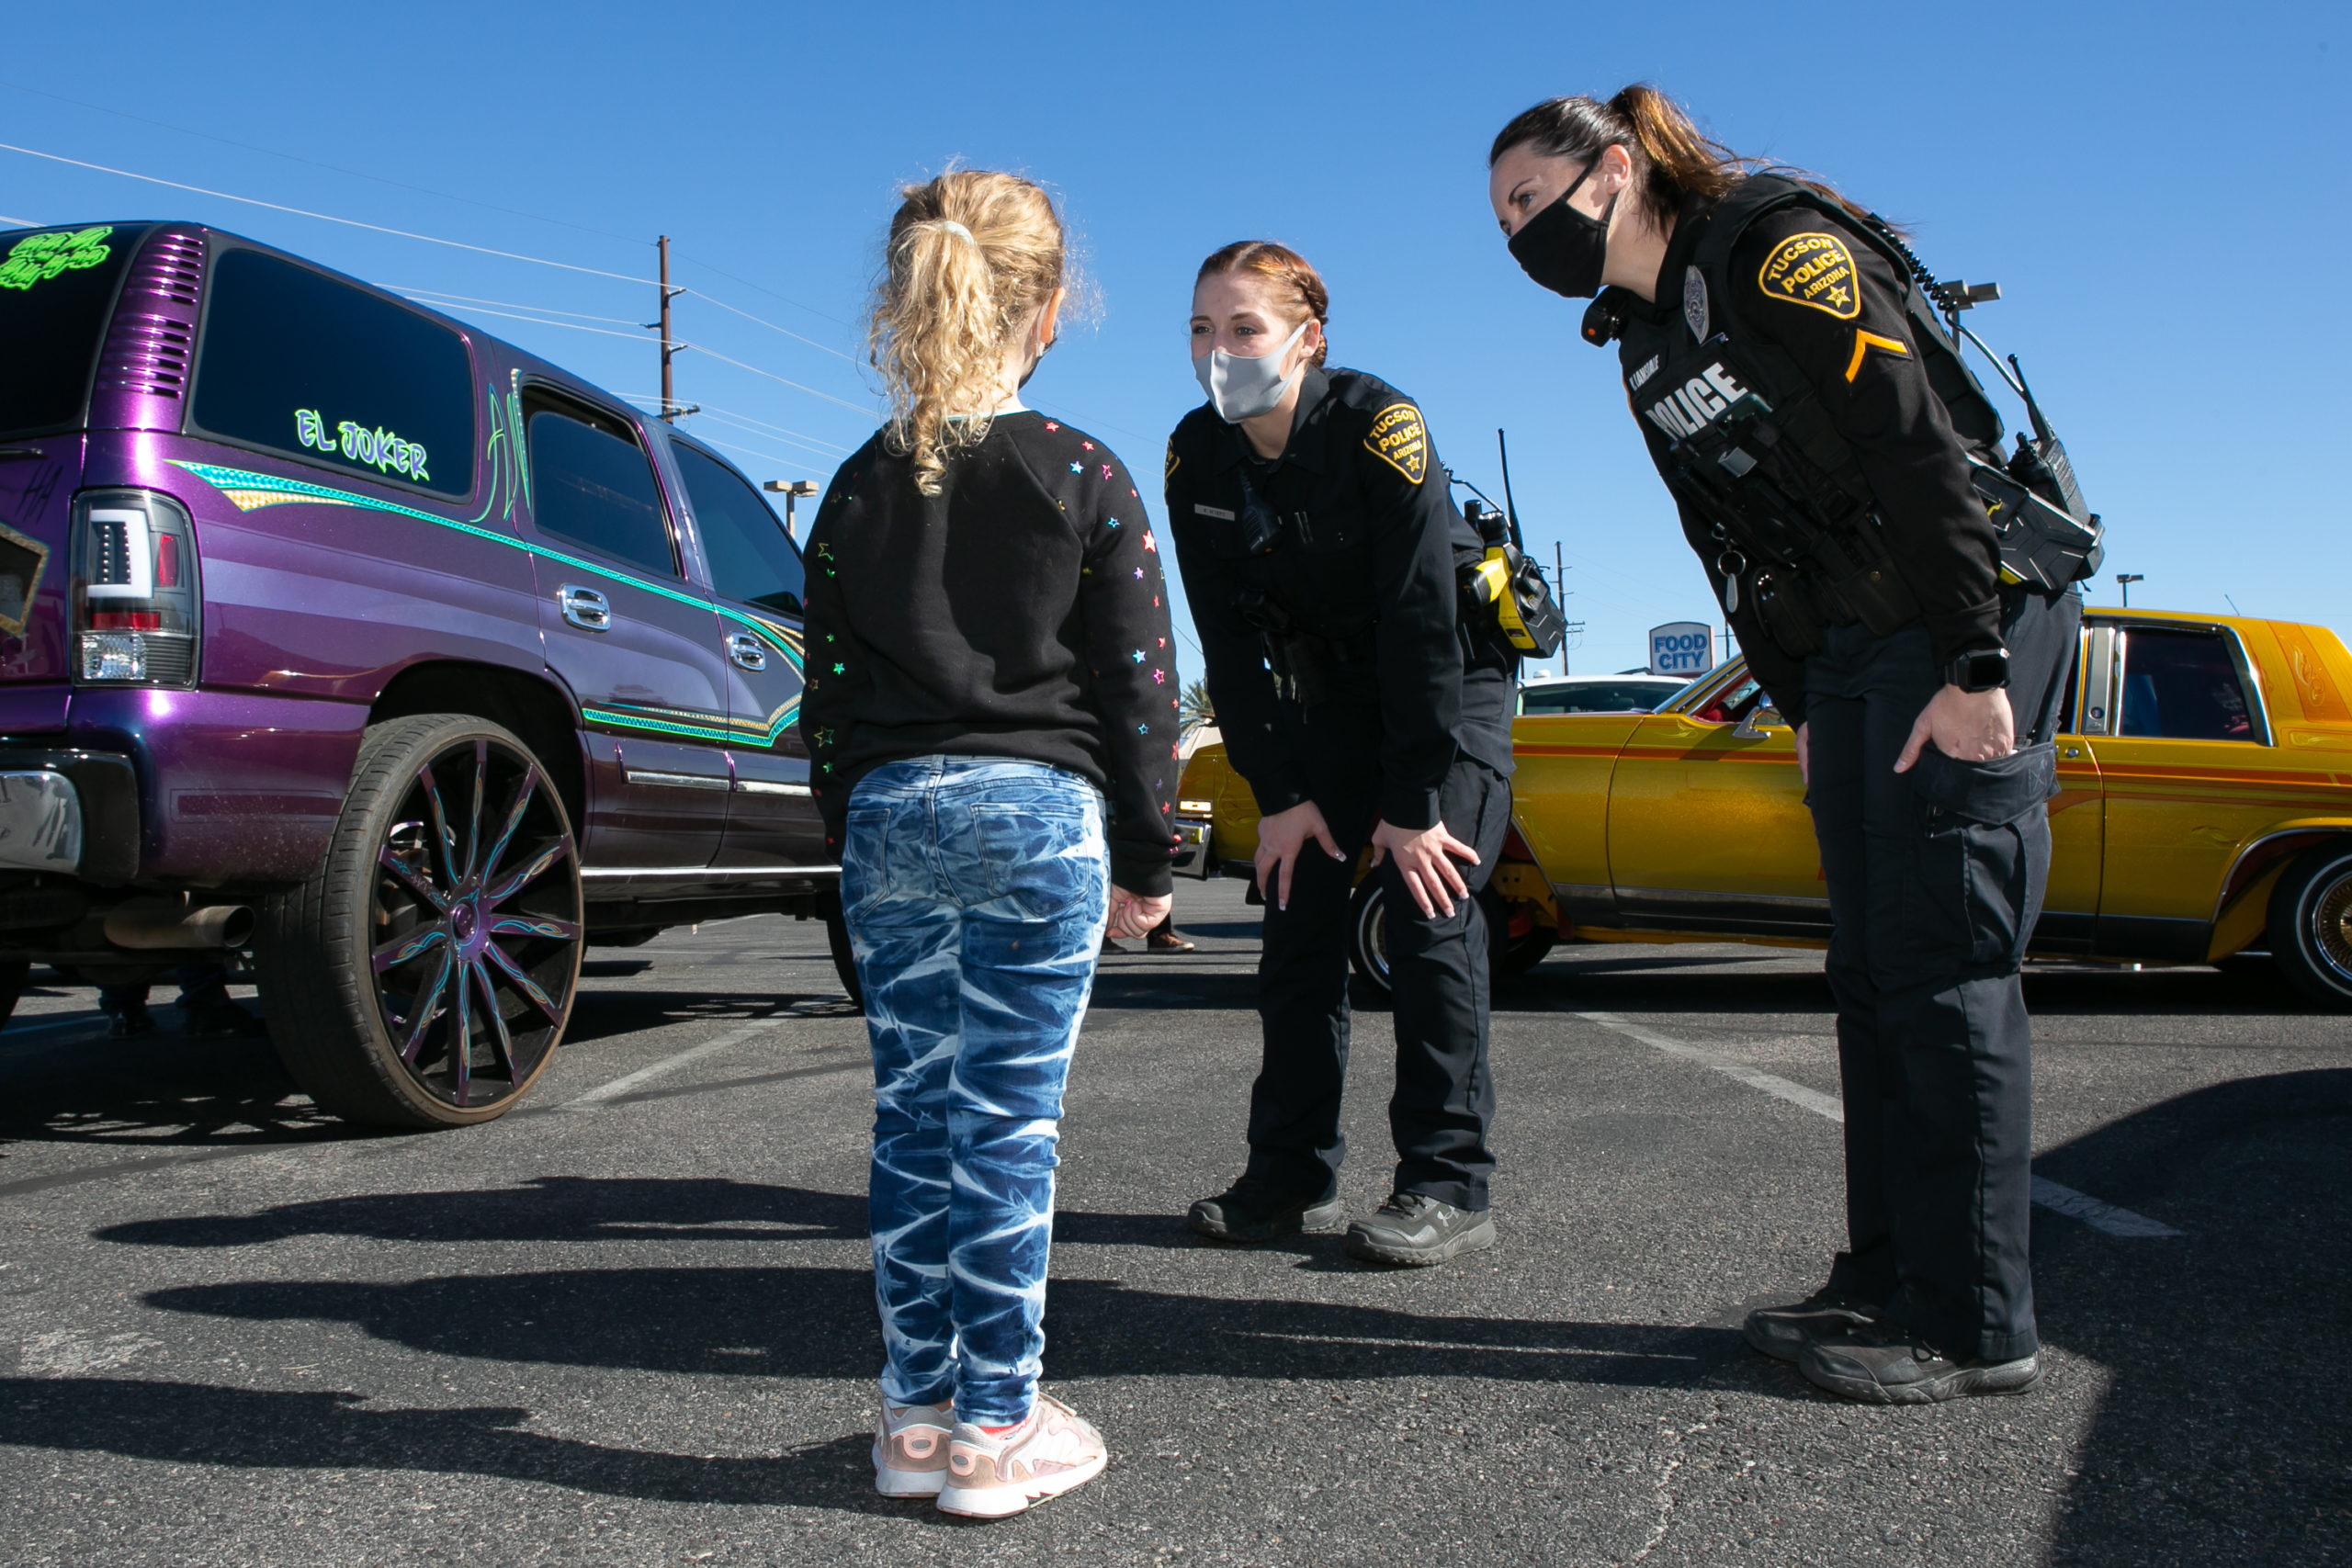 A white girl with her blond hair in a ponytail looks up at 2 female officers who bend at the waist to speak to the girl more so at her eye level.